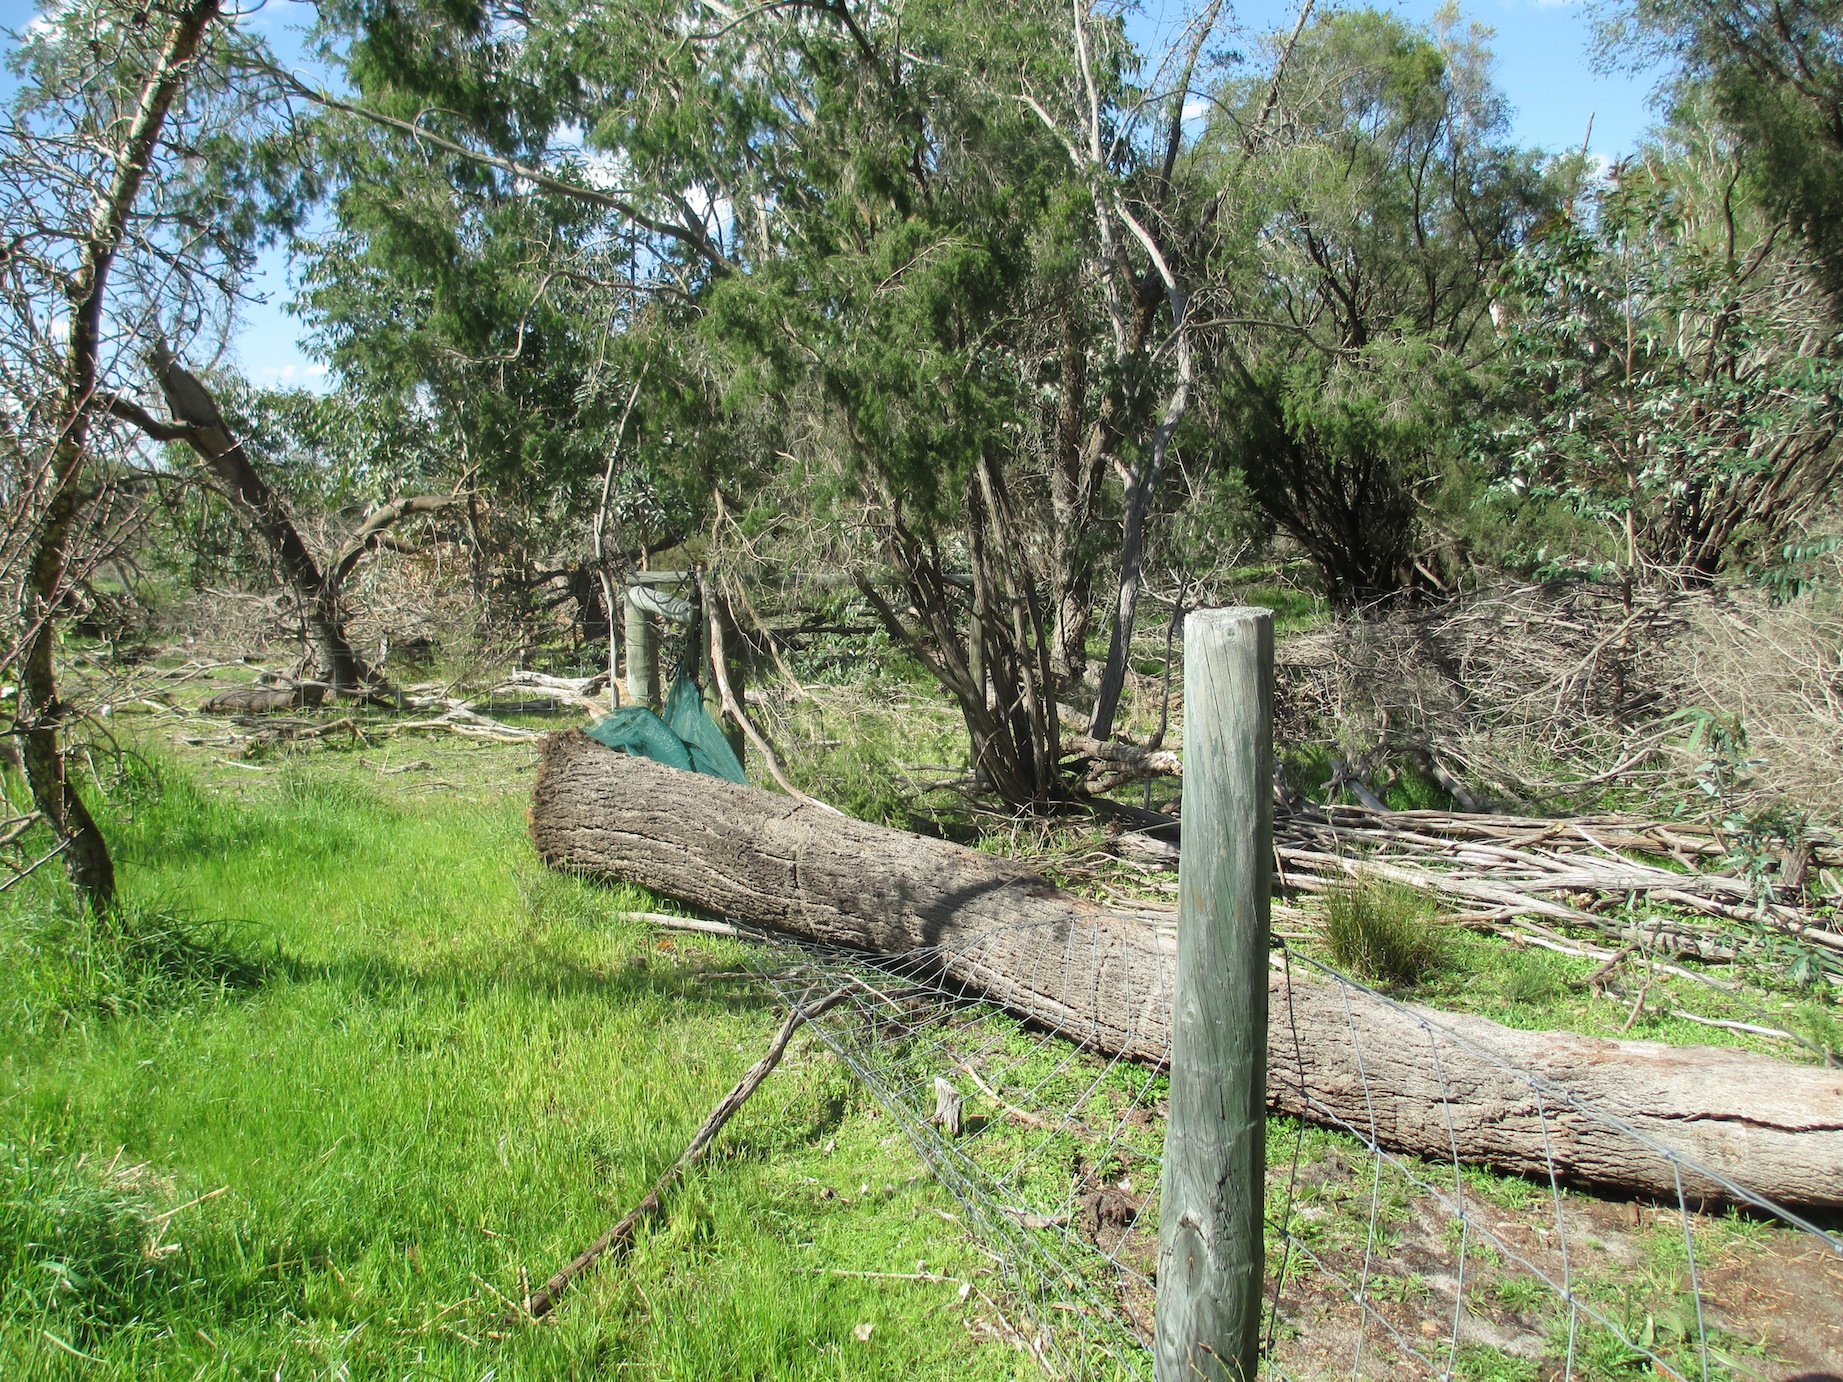 Tree fallen on orchard fence